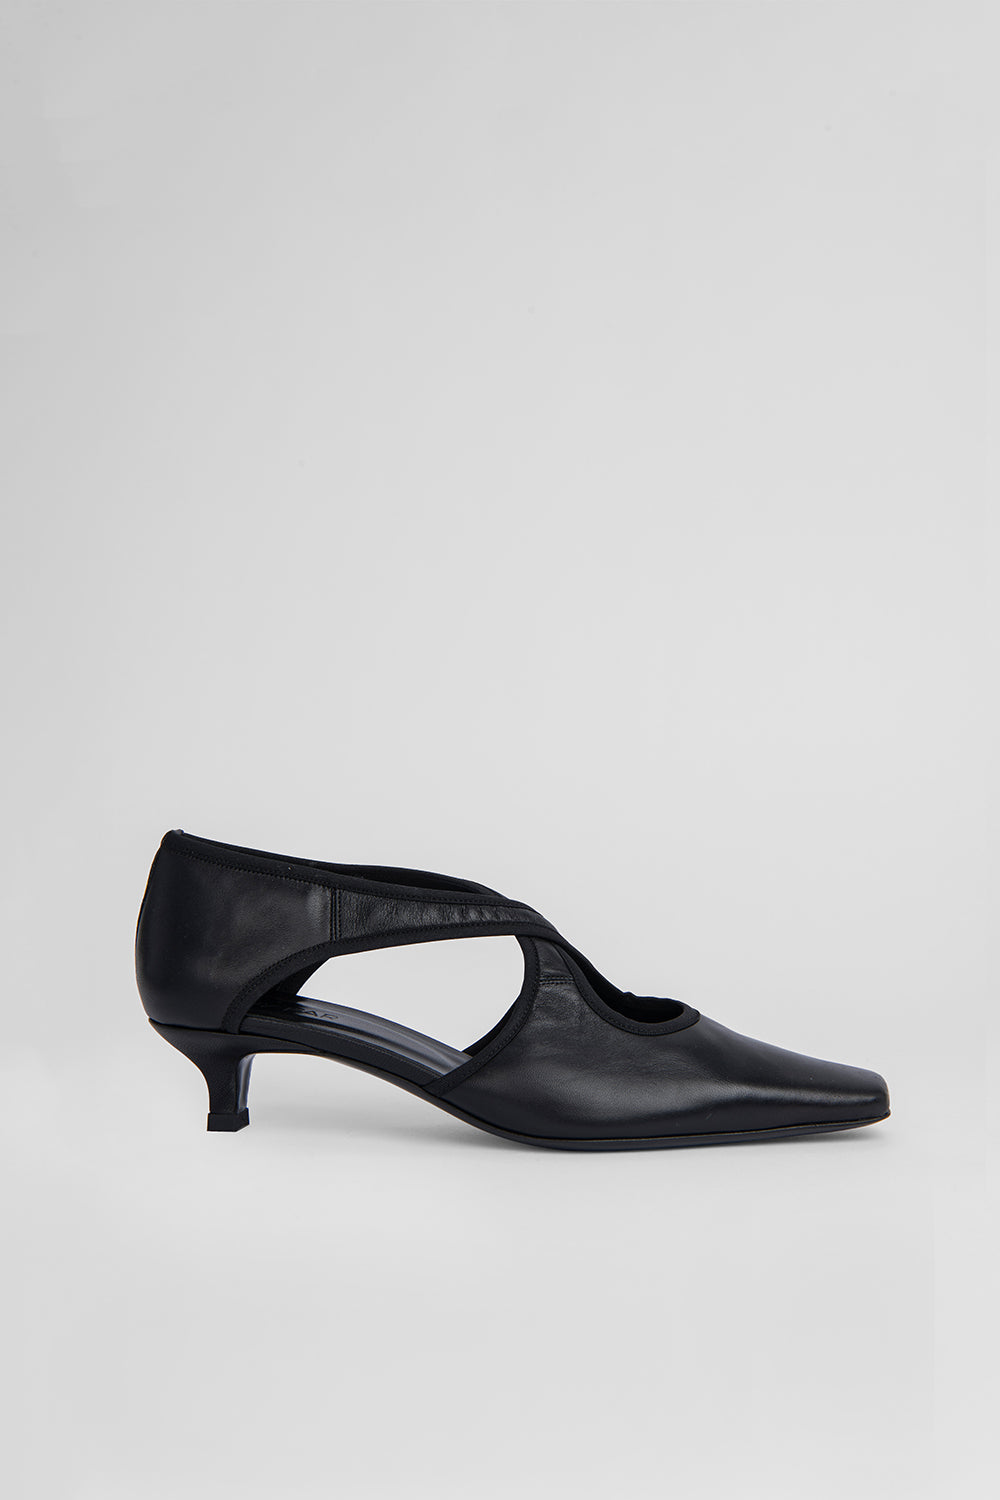 Adele Black Stretch Leather